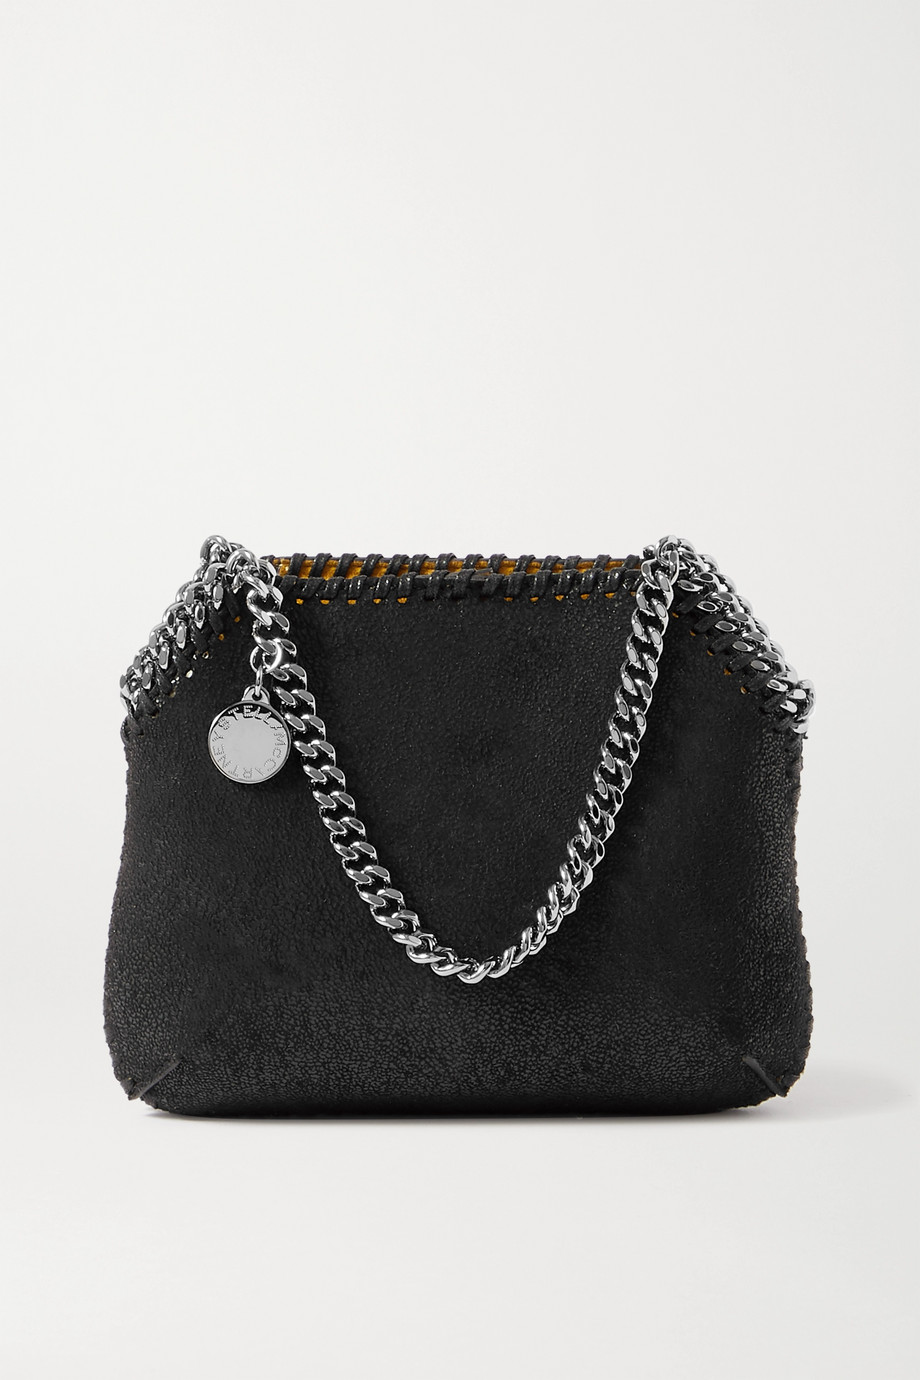 Stella McCartney Falabella mini vegetarian brushed-leather shoulder bag